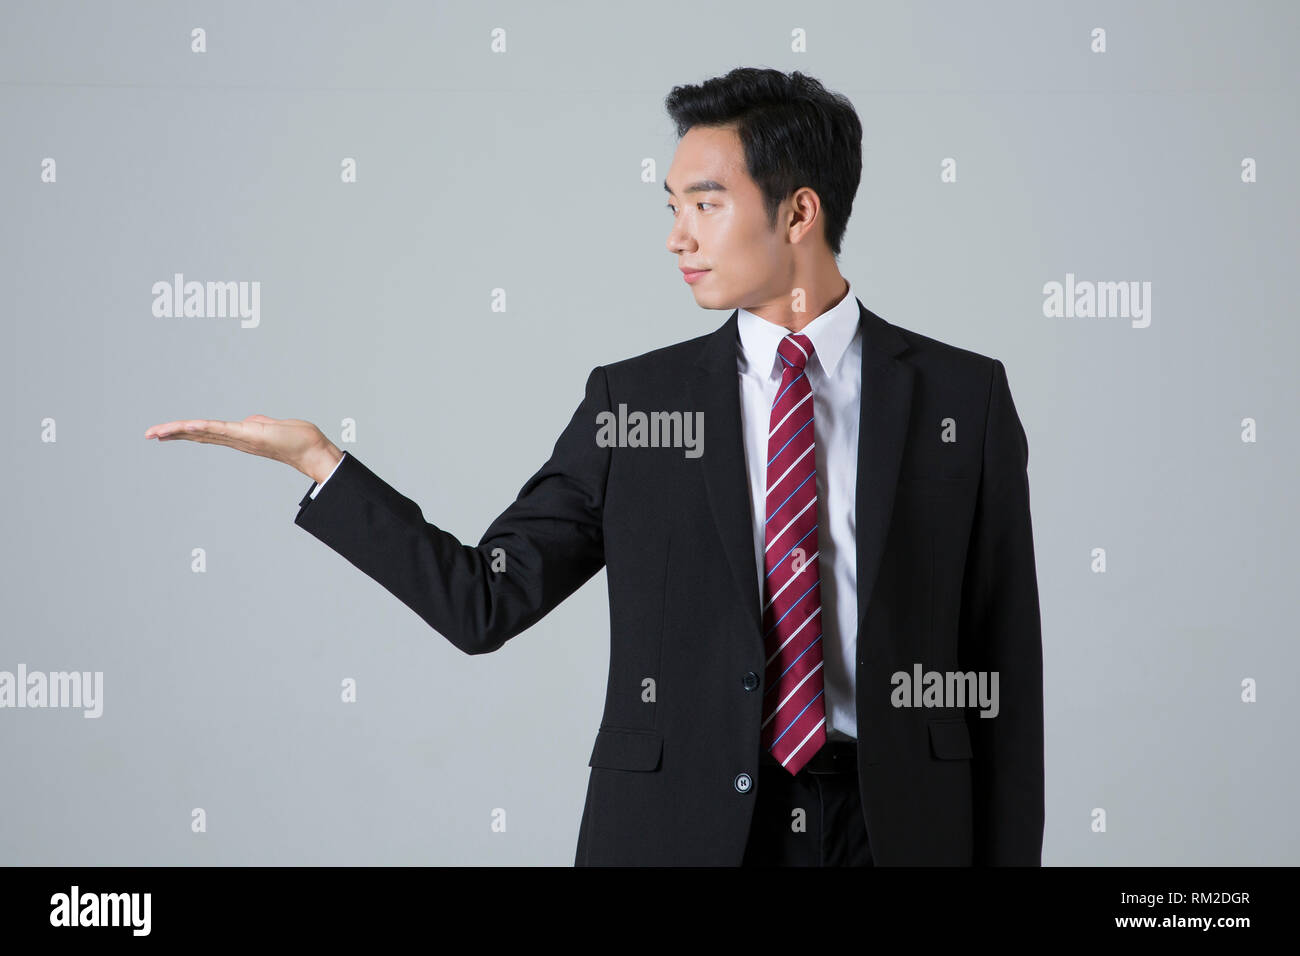 Young businessman concept photo. 030 - Stock Image